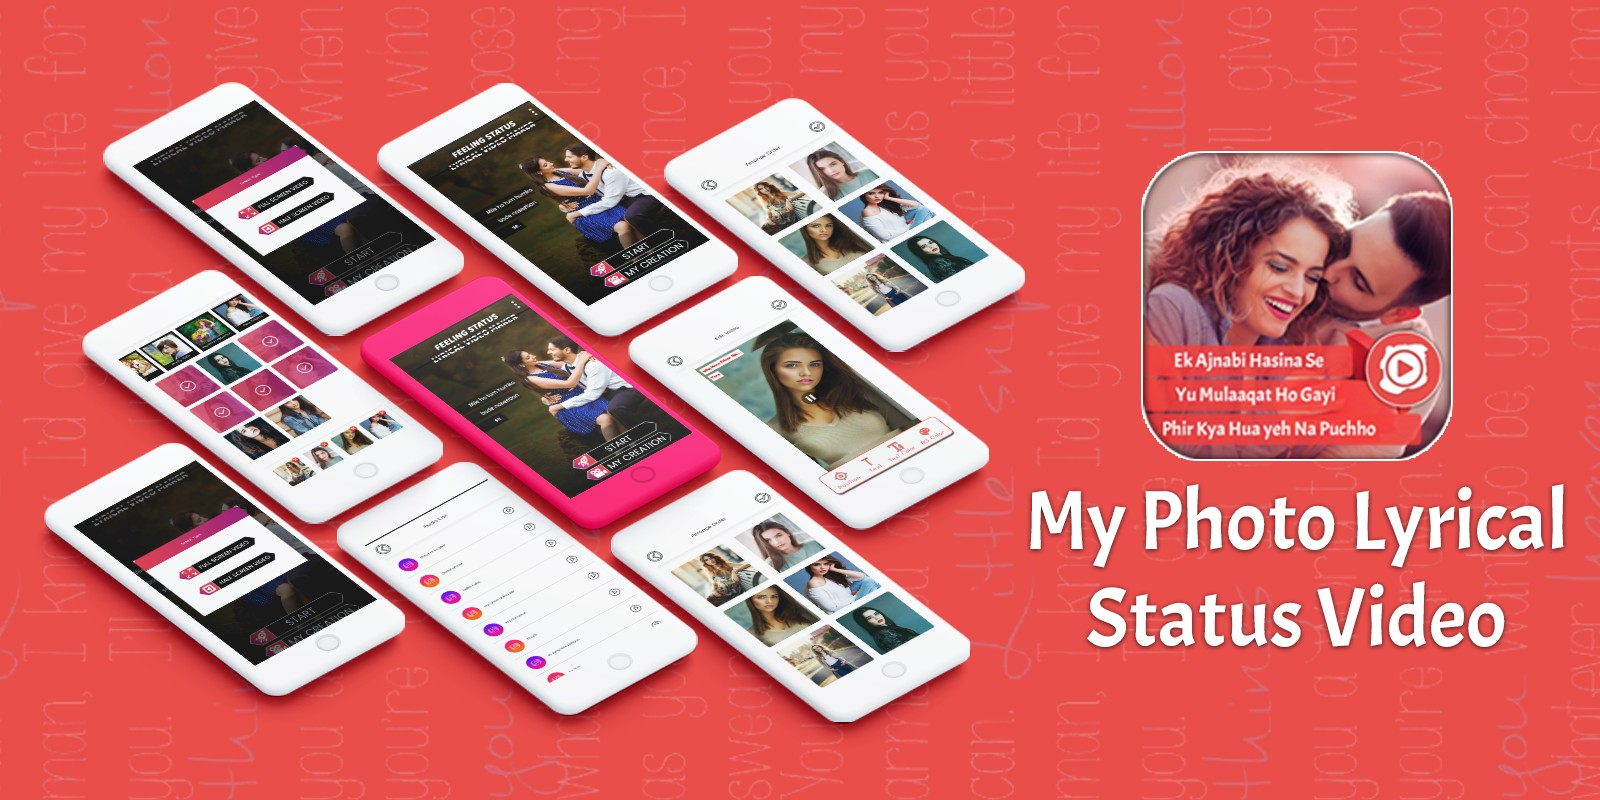 My Photo Lyrical Video Status Maker - Android App